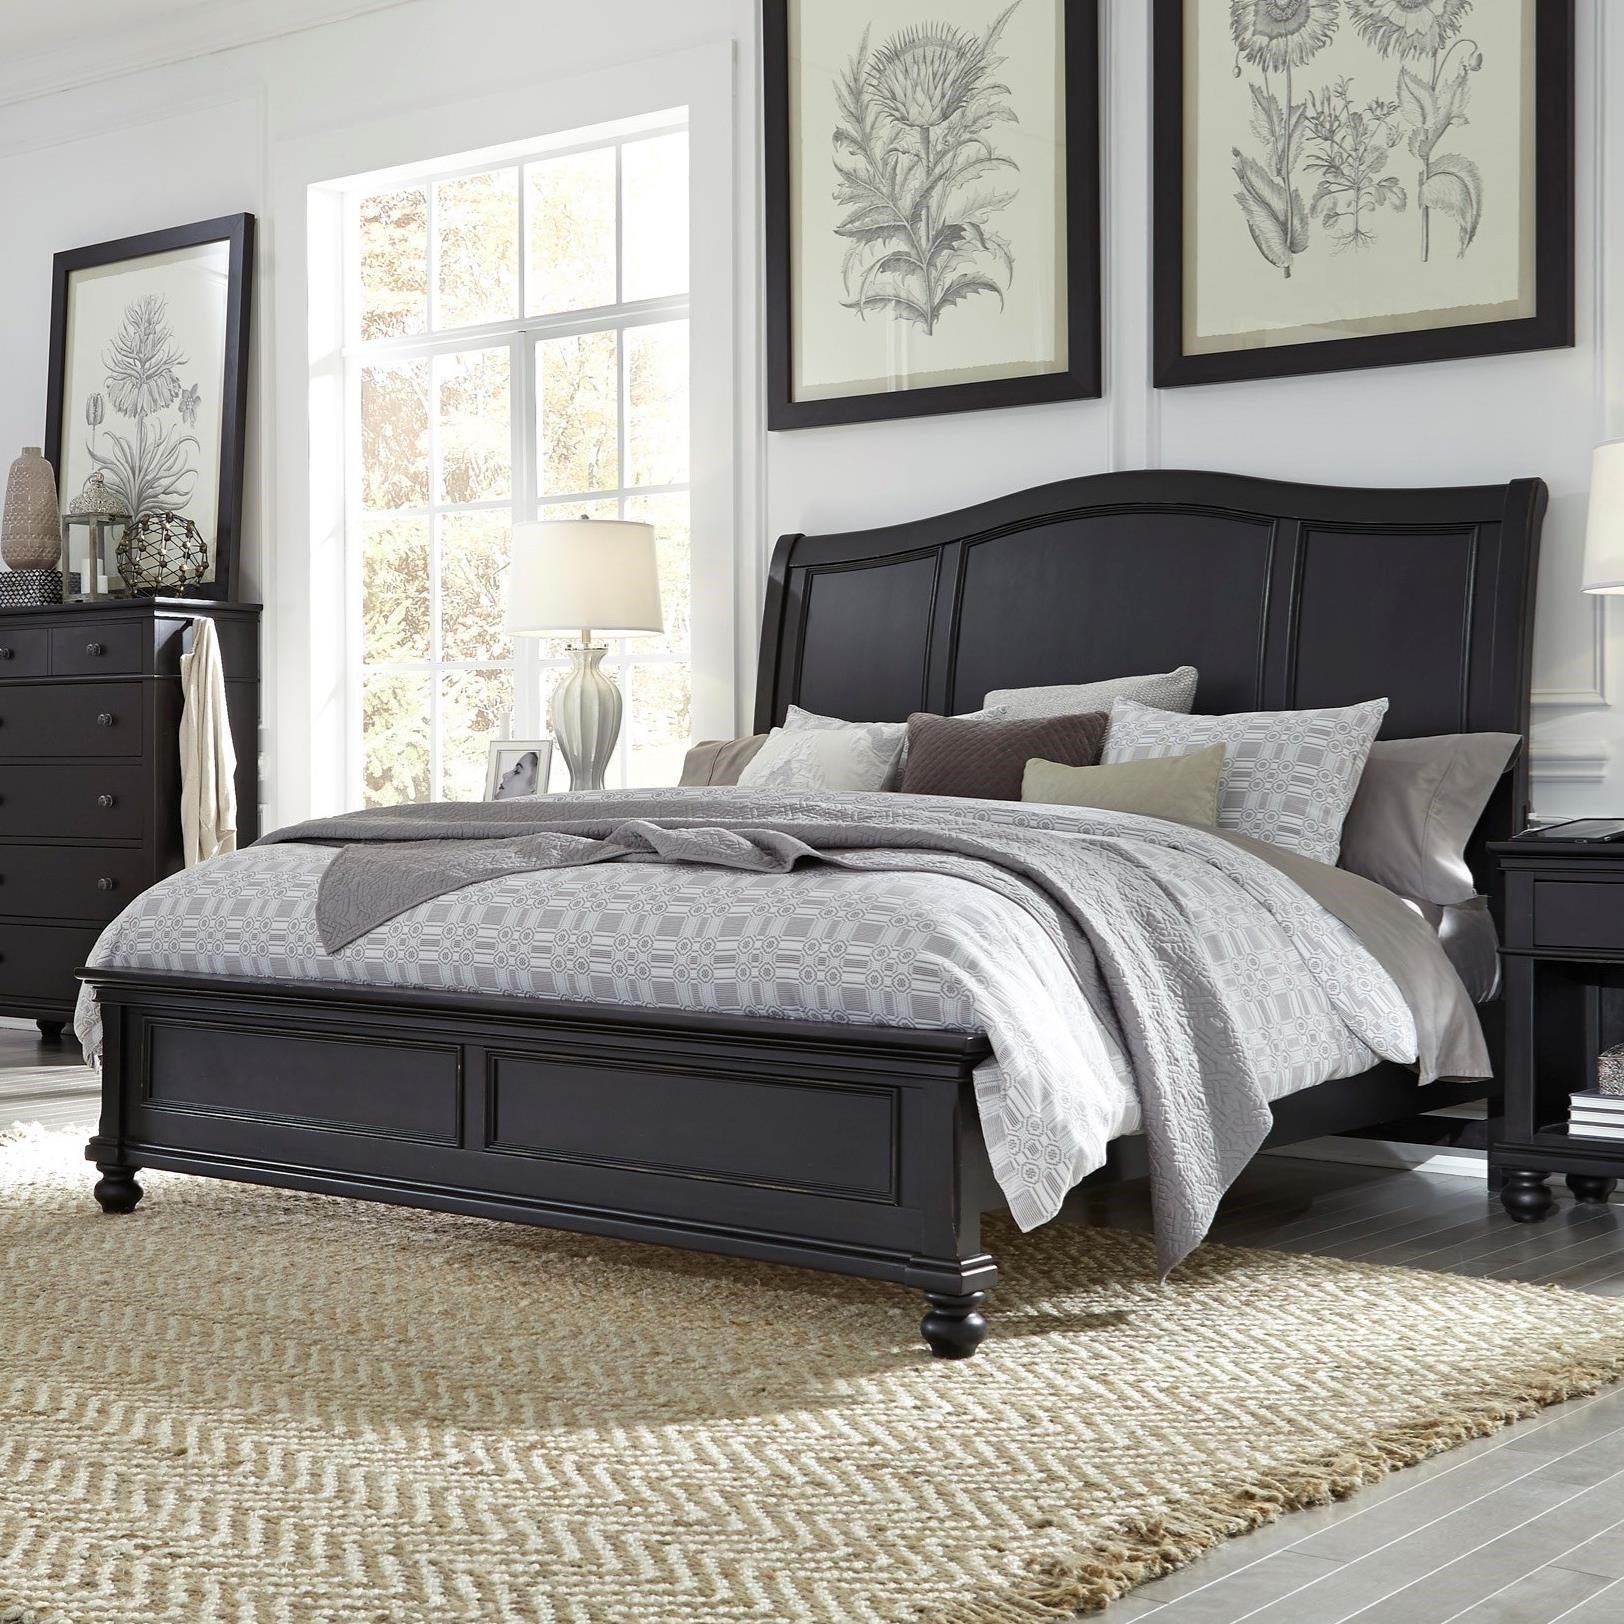 Oakford Oakford Queen Sleigh Bed by Aspenhome at Morris Home